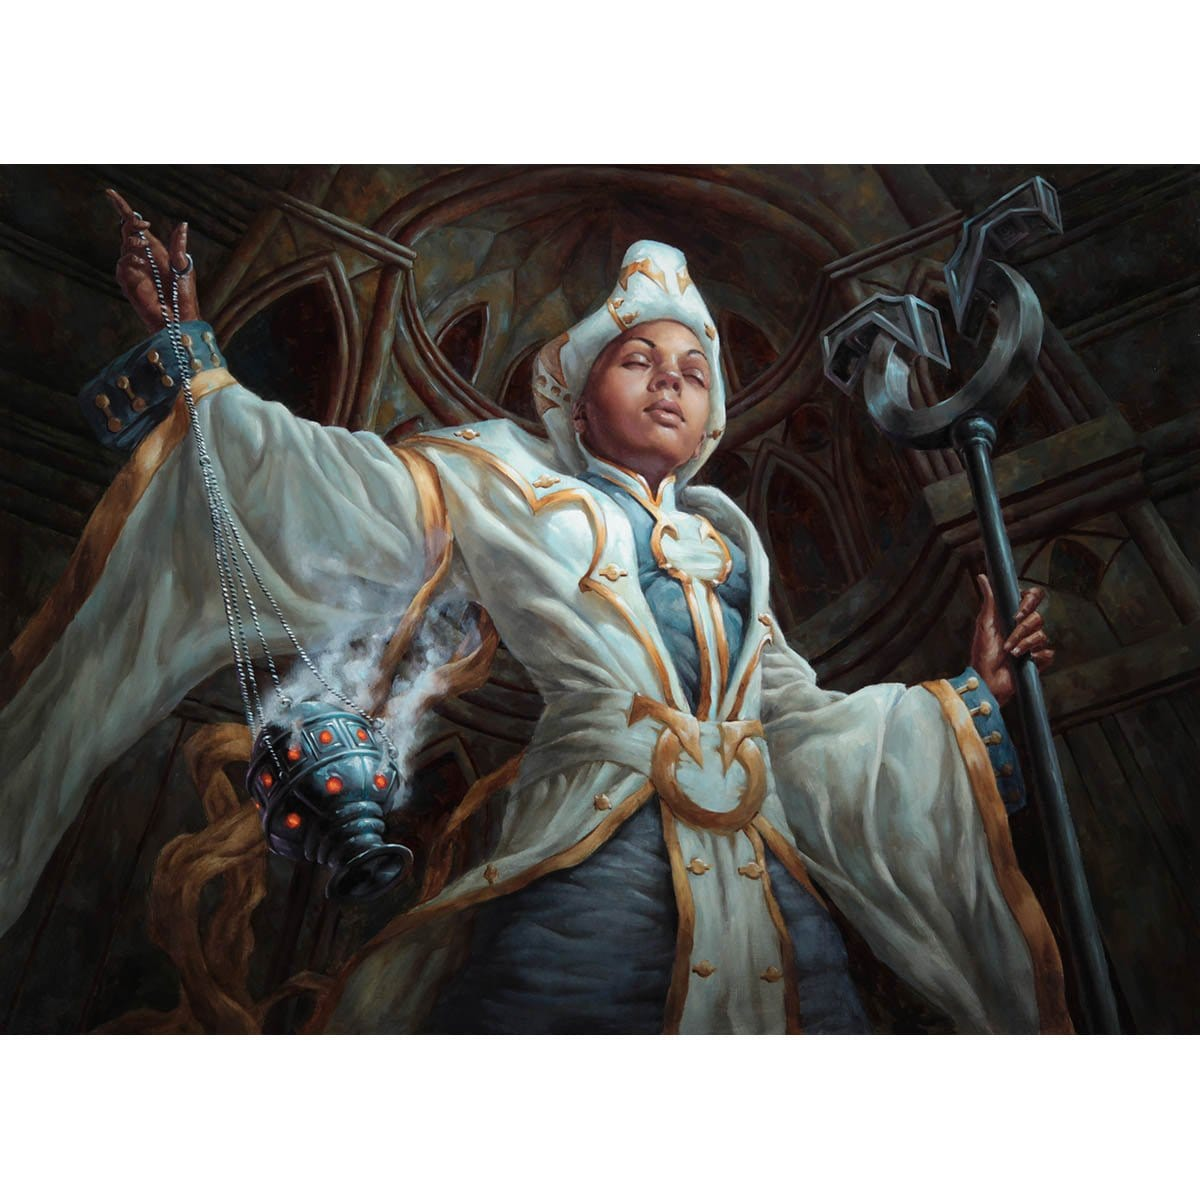 Cathedral Sanctifier Print - Print - Original Magic Art - Accessories for Magic the Gathering and other card games